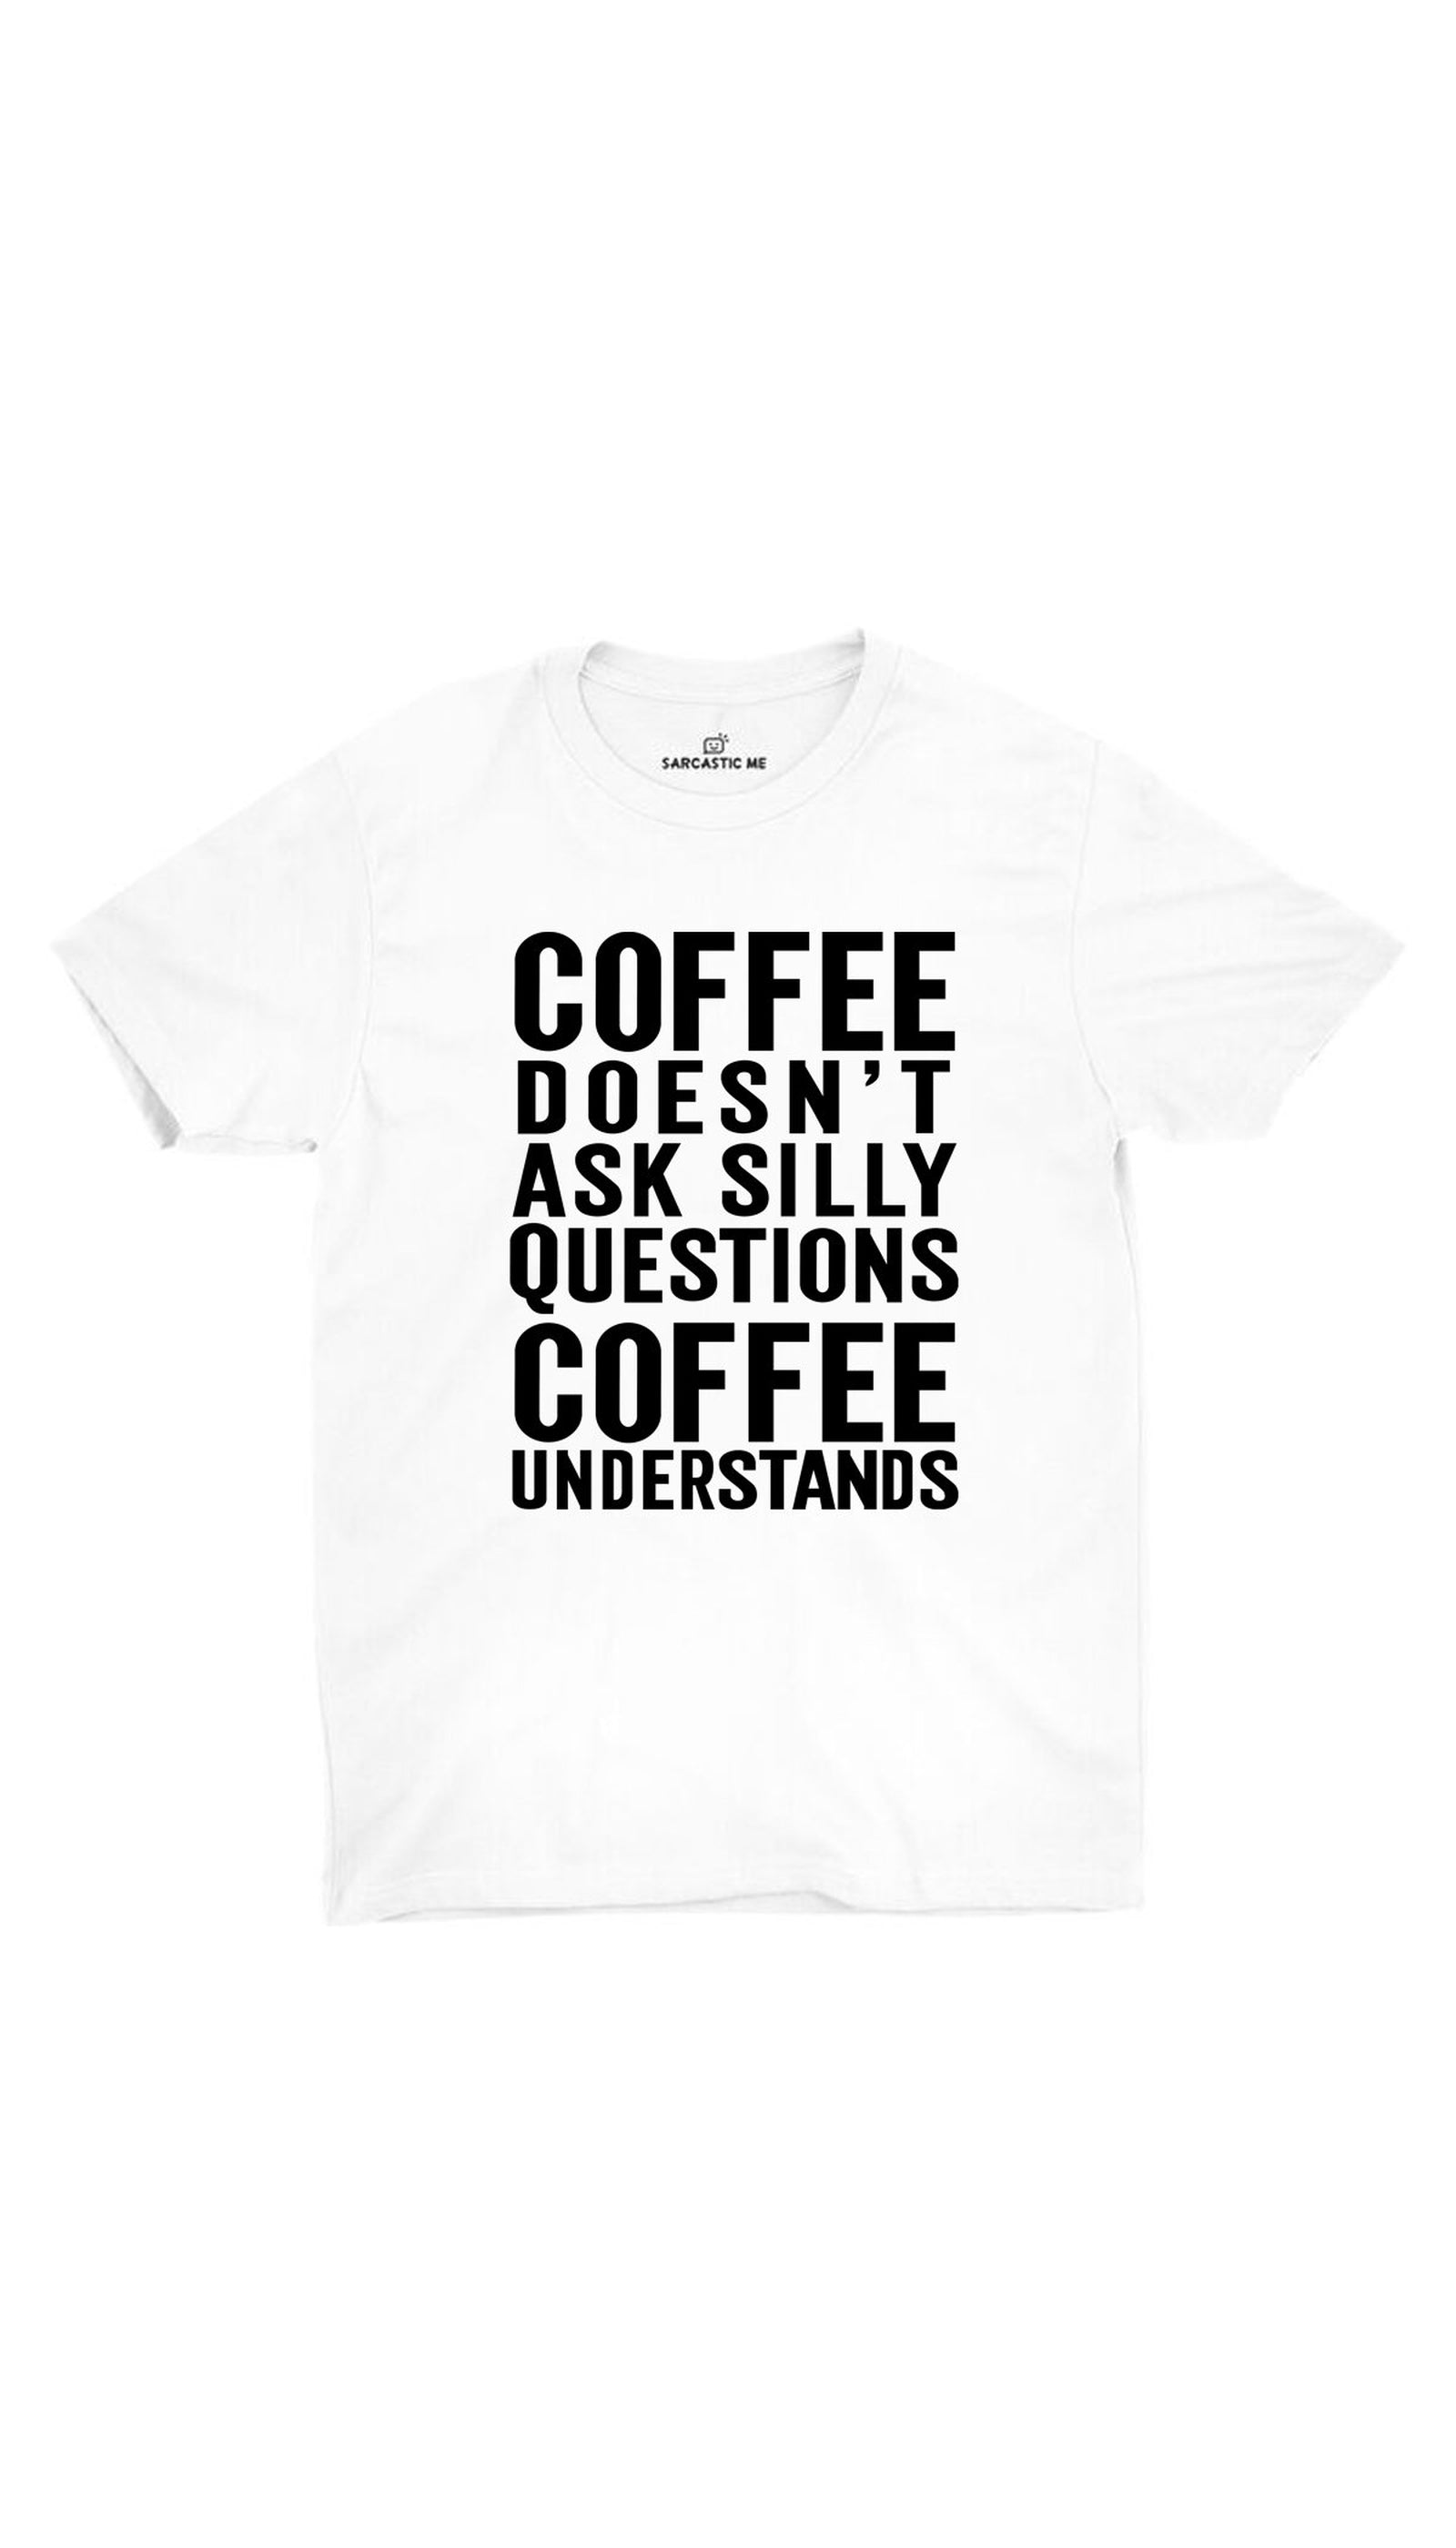 Coffee Doesn't Ask Silly Questions White Unisex T- Shirt | Sarcastic ME